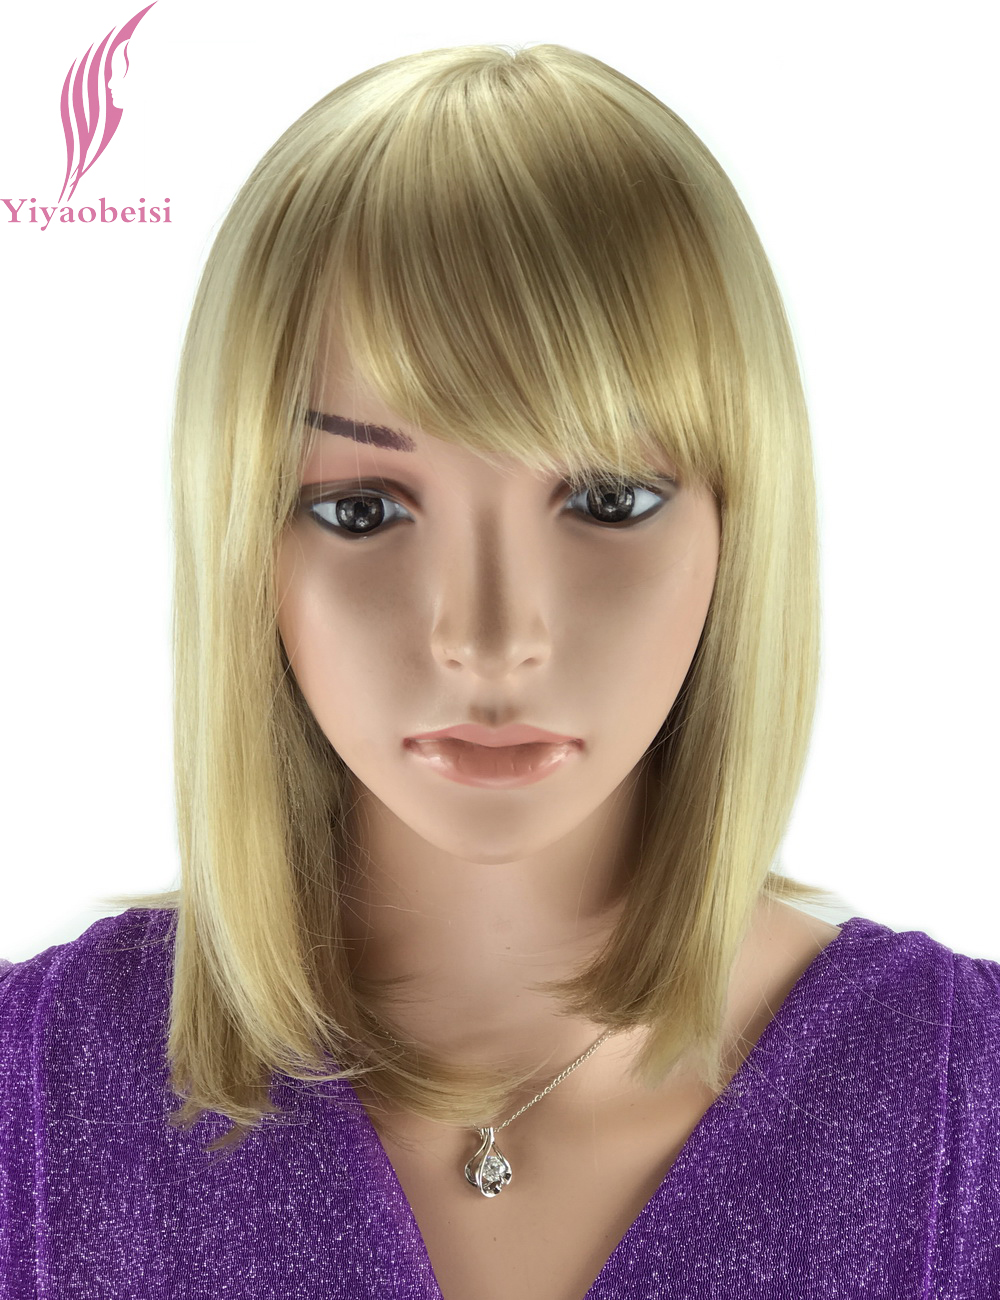 Yiyaobess 30cm Highlights Blonde Ombre Wig For Women Heat Resistant Synthetic African American Medium Bob Wigs With Bangs